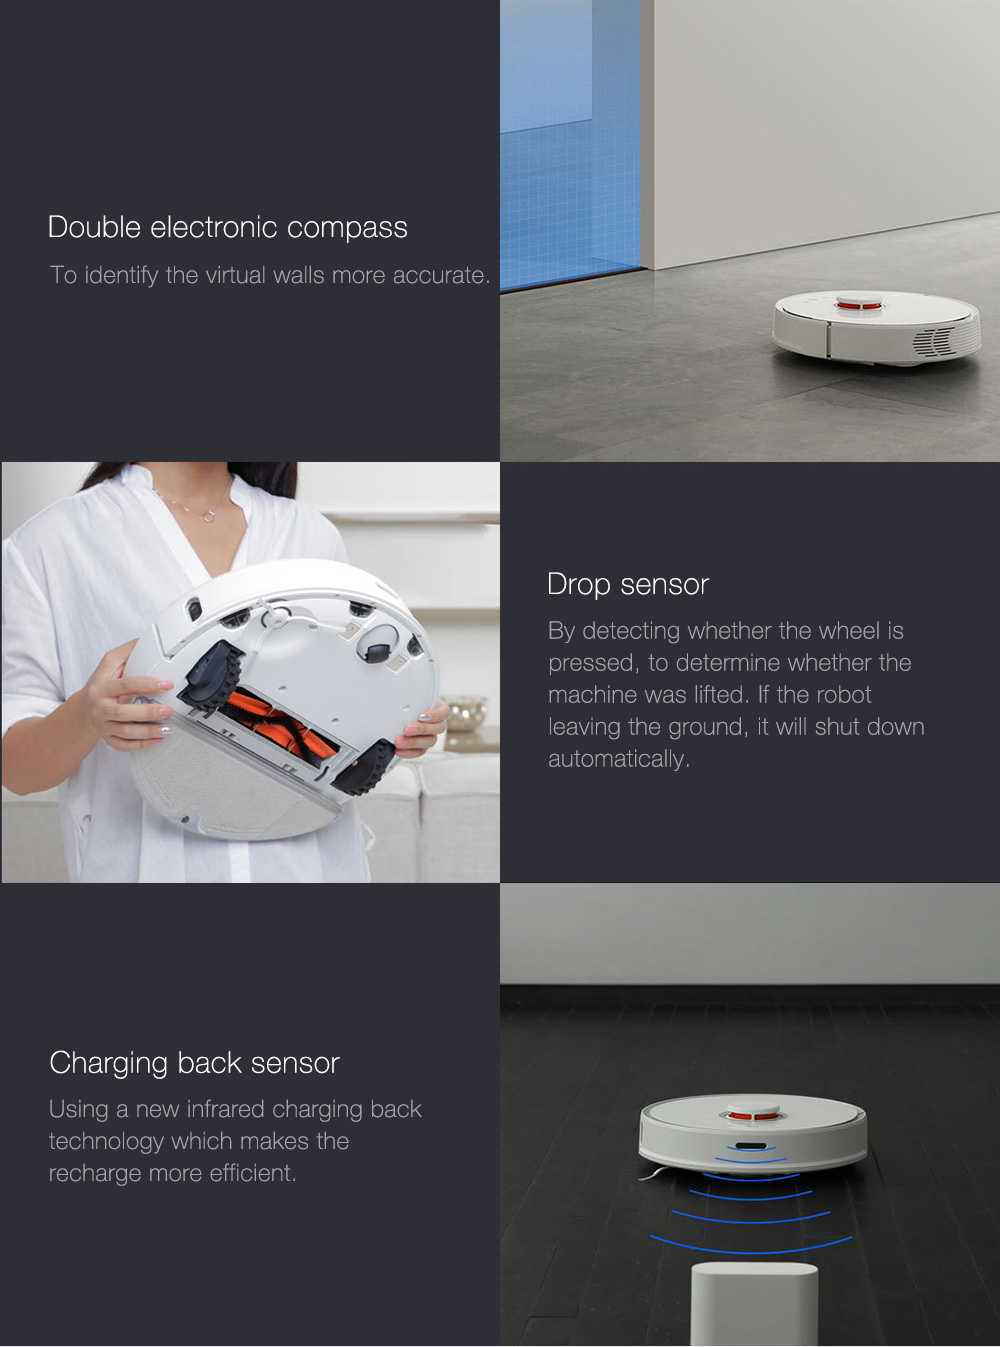 INTERNATIONAL VERSION XIAOMI MIJIA ROBOROCK VACUUM CLEANER 2 AUTOMATIC AREA CLEANING 2000PA SUCTION 2 IN 1 SWEEPING MOPPING FUNCTION 256393 21